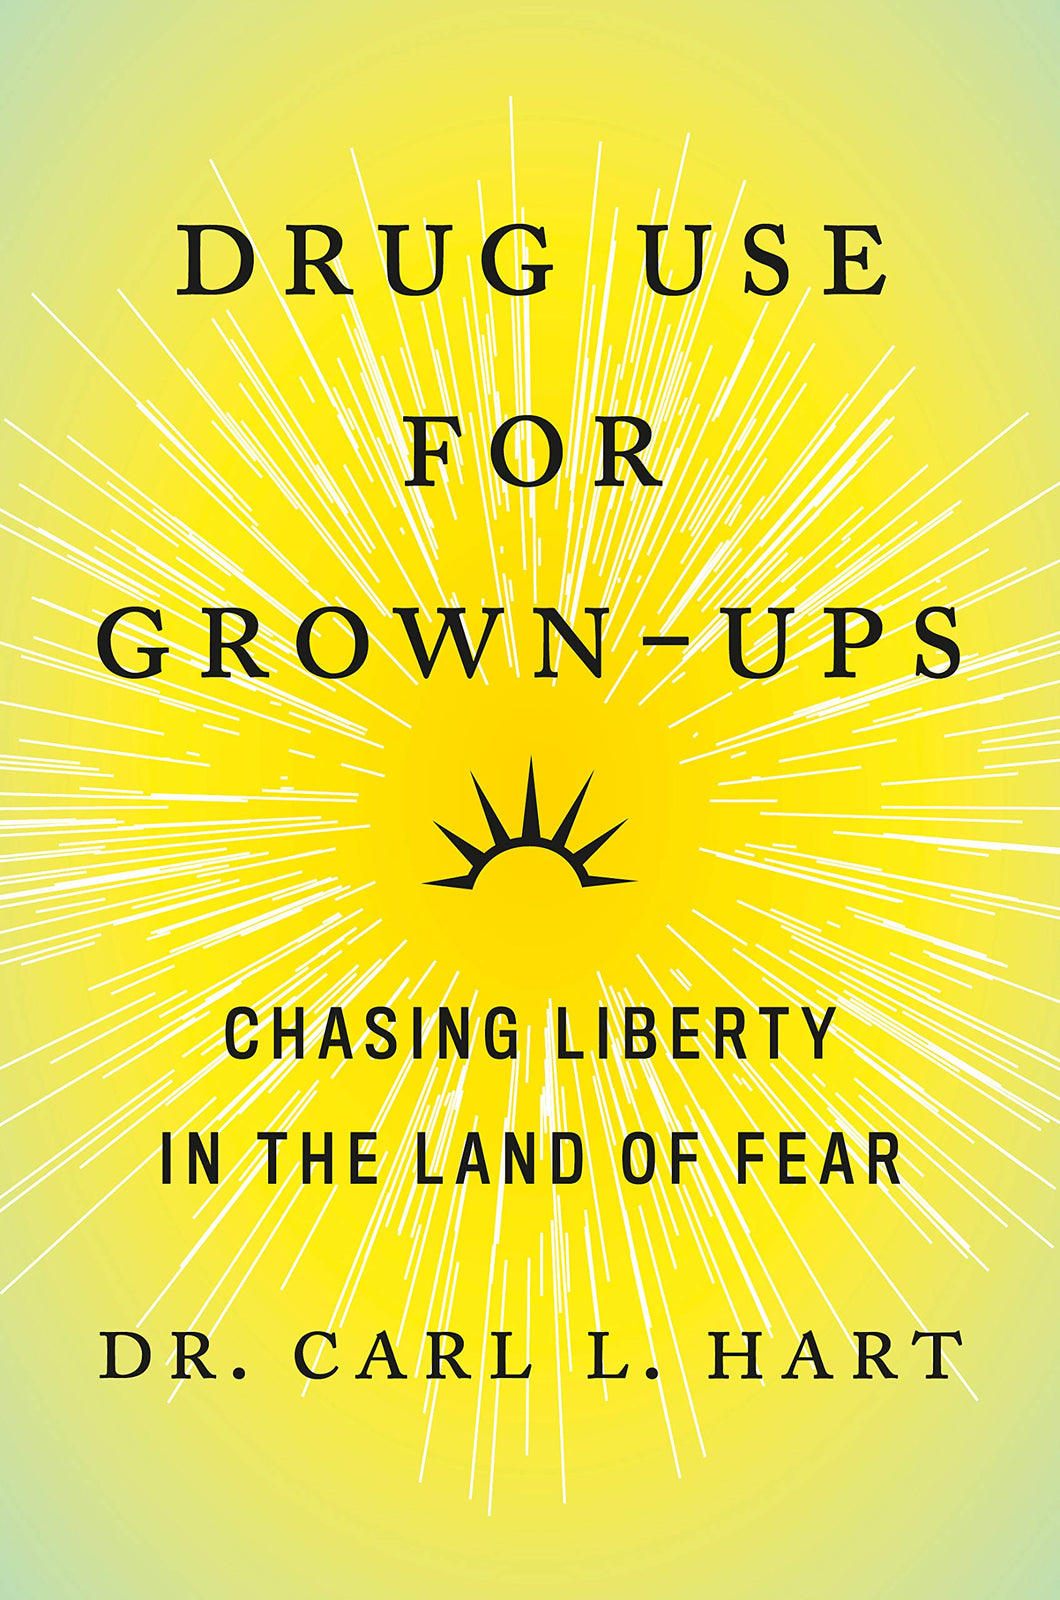 Drug Use for Grown-Ups: Chasing Liberty in the Land of Fear by Dr. Carl L. Hart